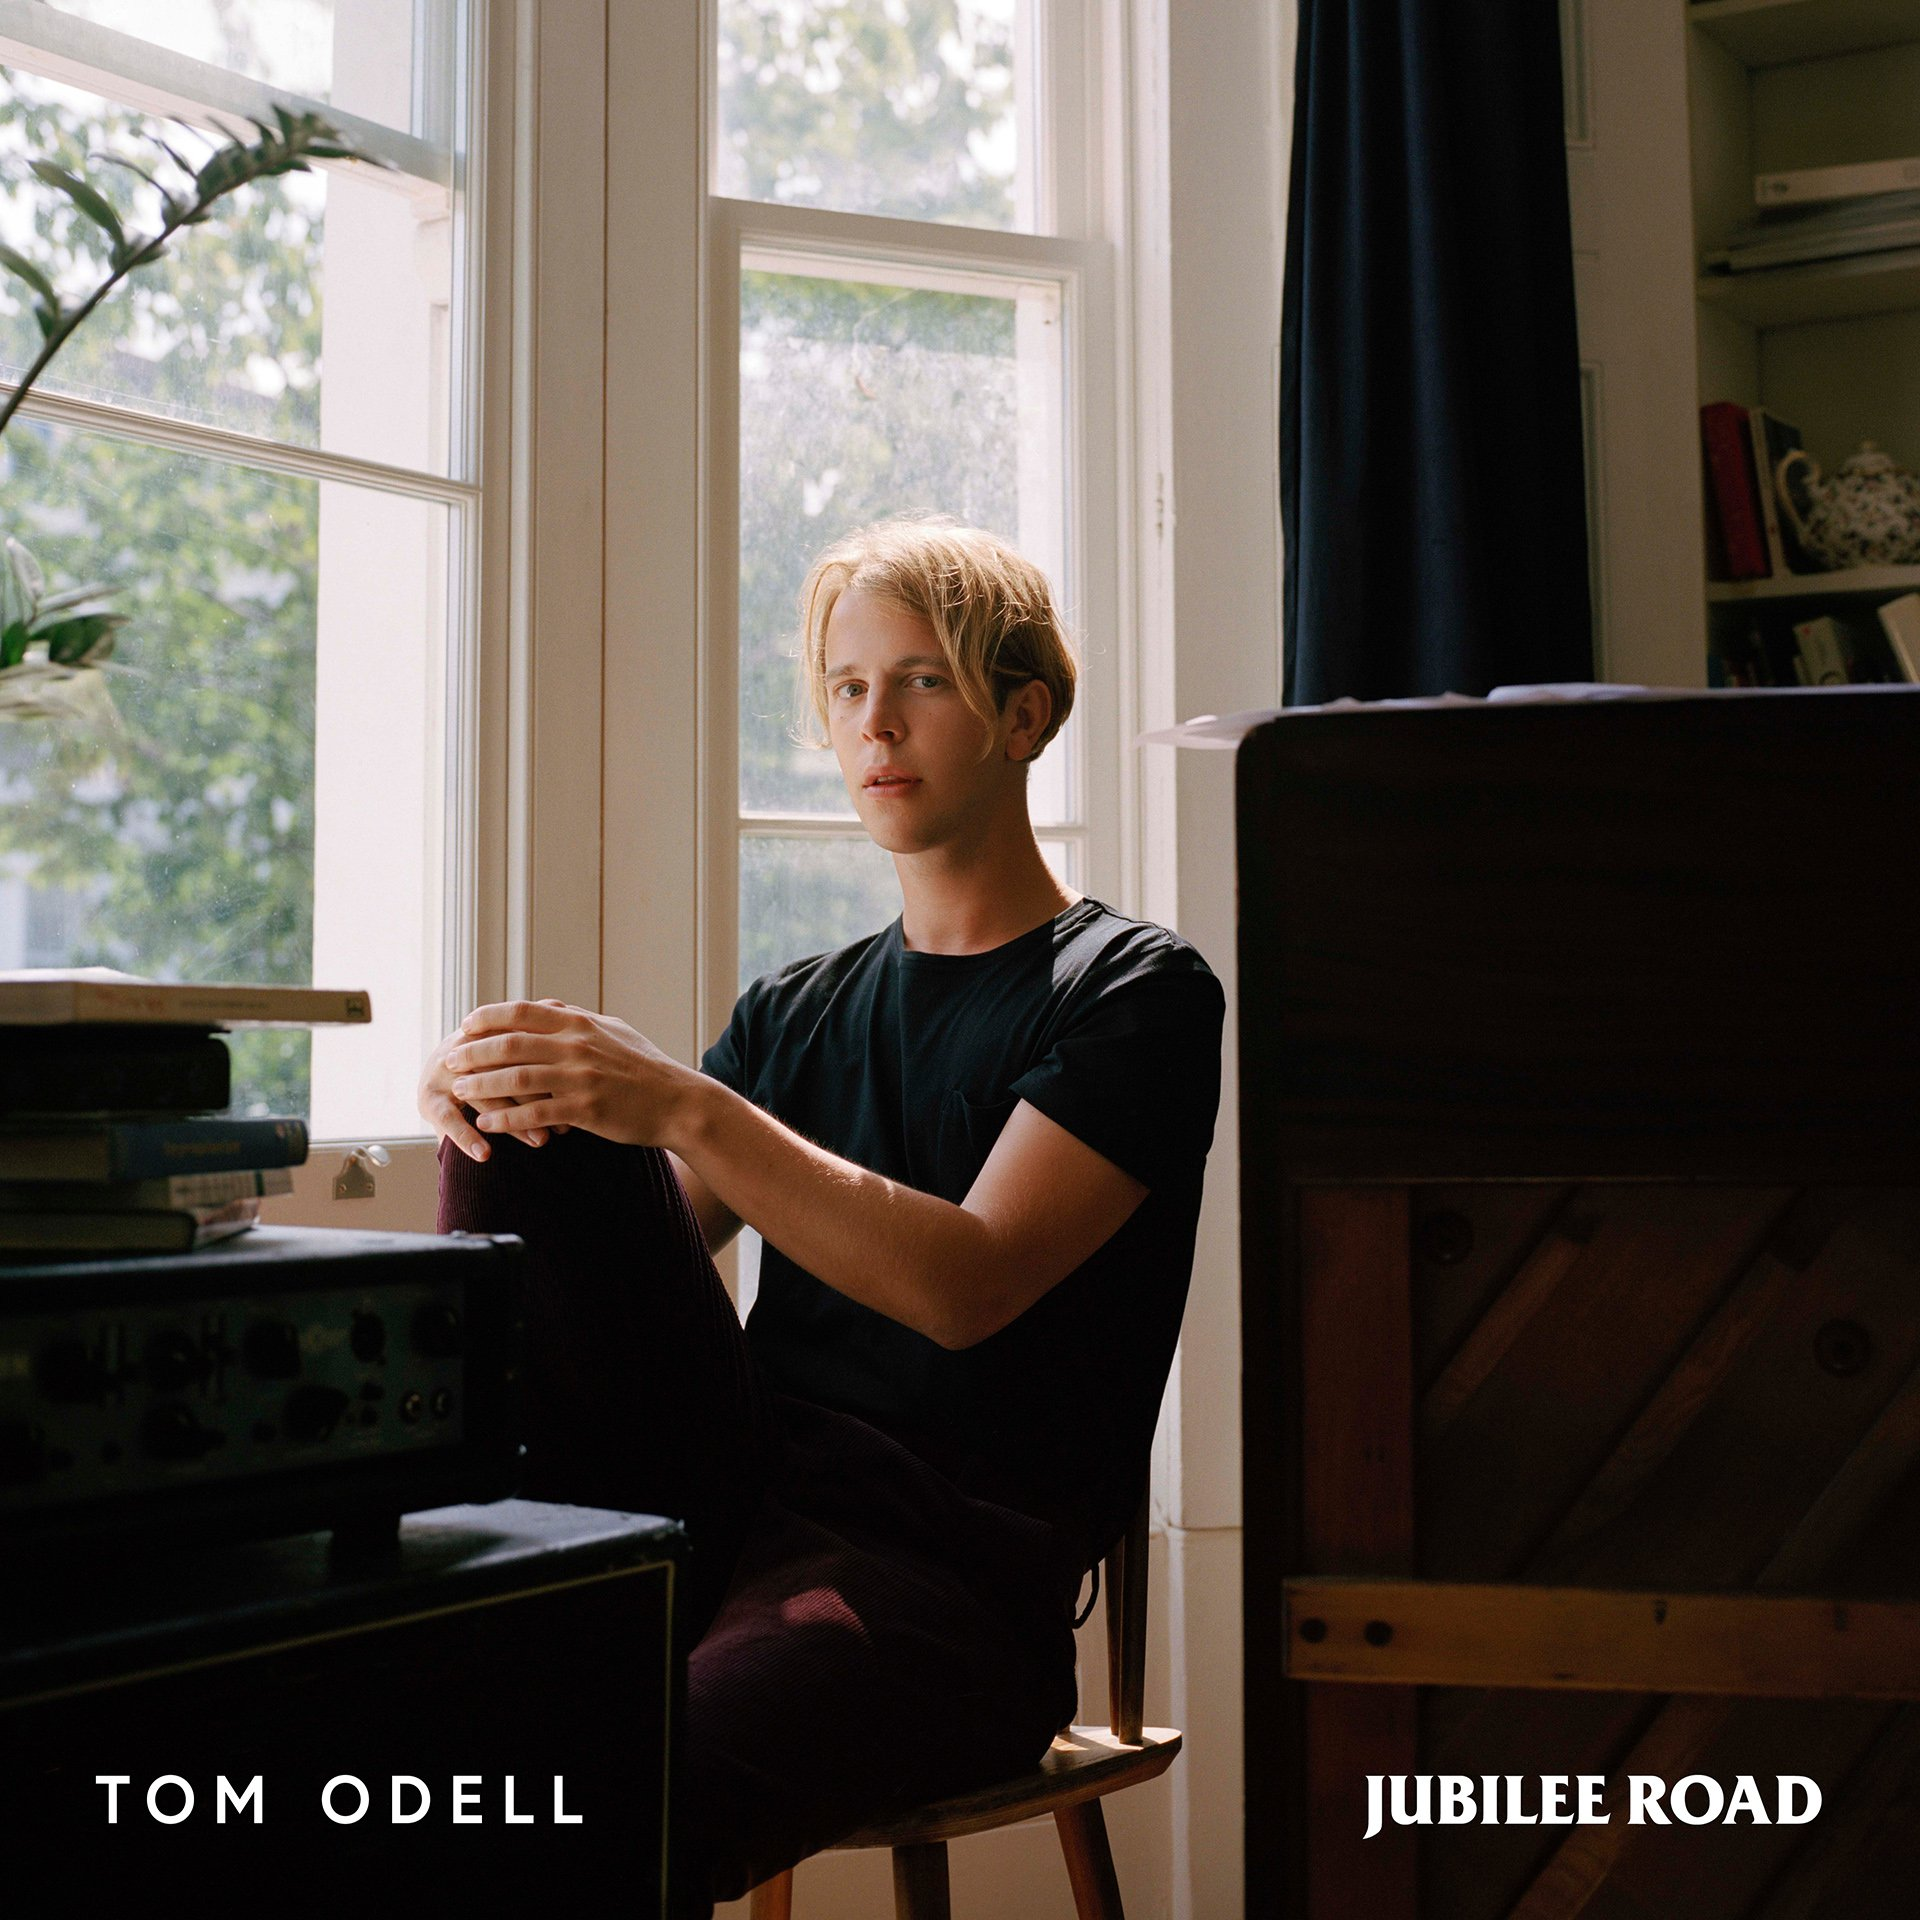 Image result for jubilee road tom odell